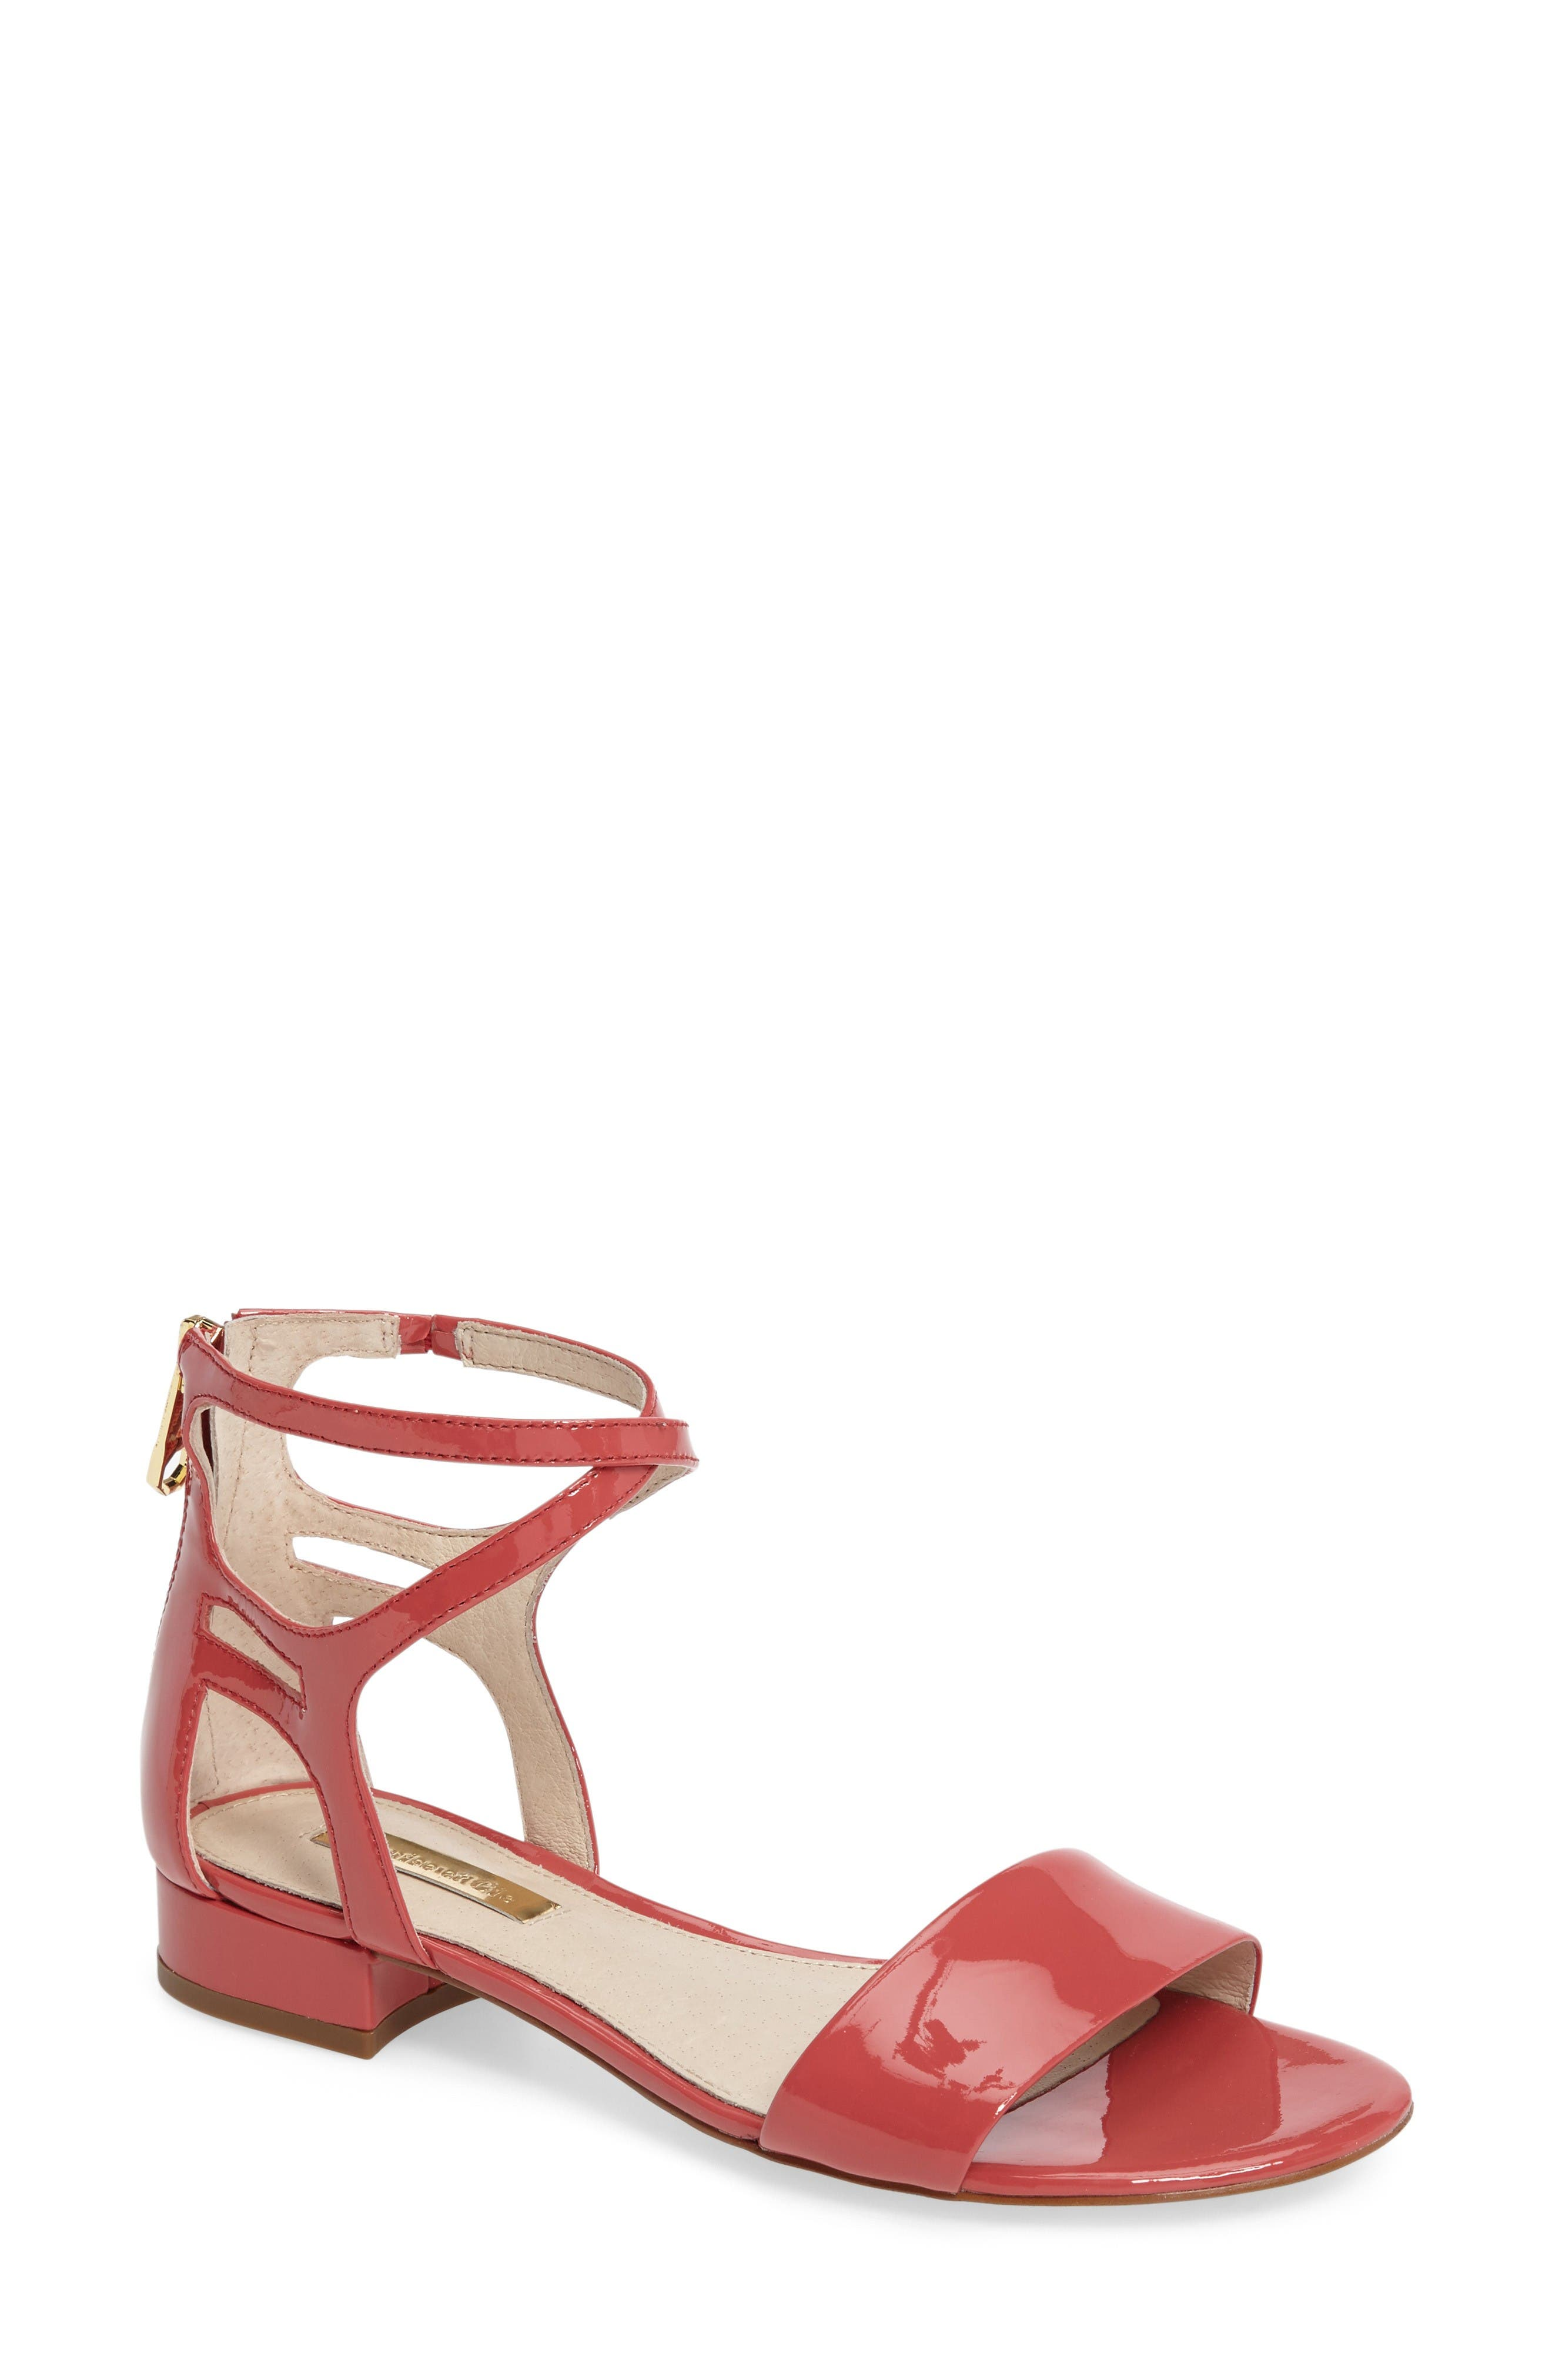 Louise et Cie Adley Ankle Strap Sandal (Women)